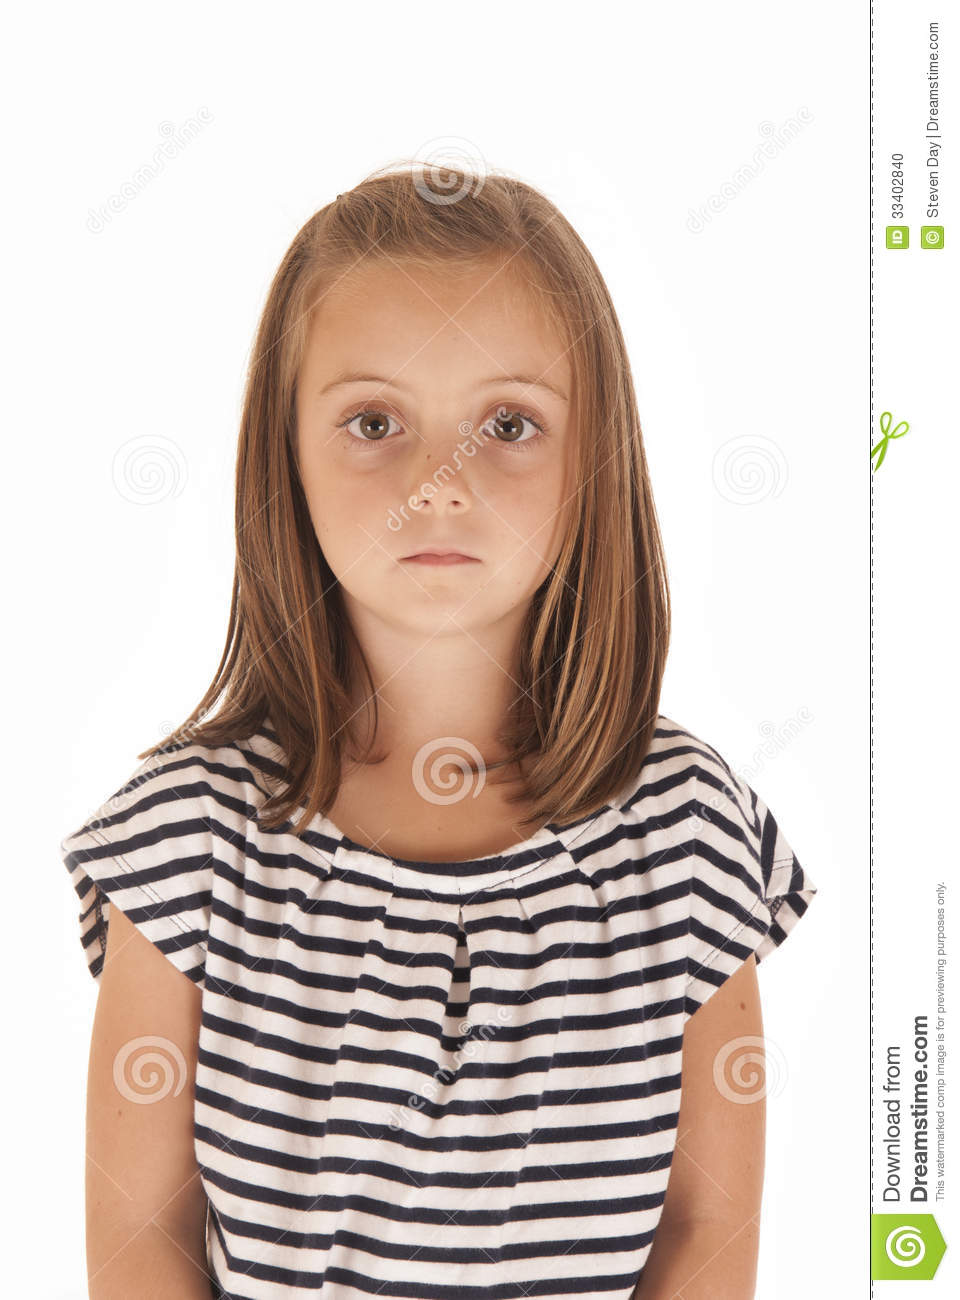 Young Girl With Big Eyes Stoic Expression Stock Photo.